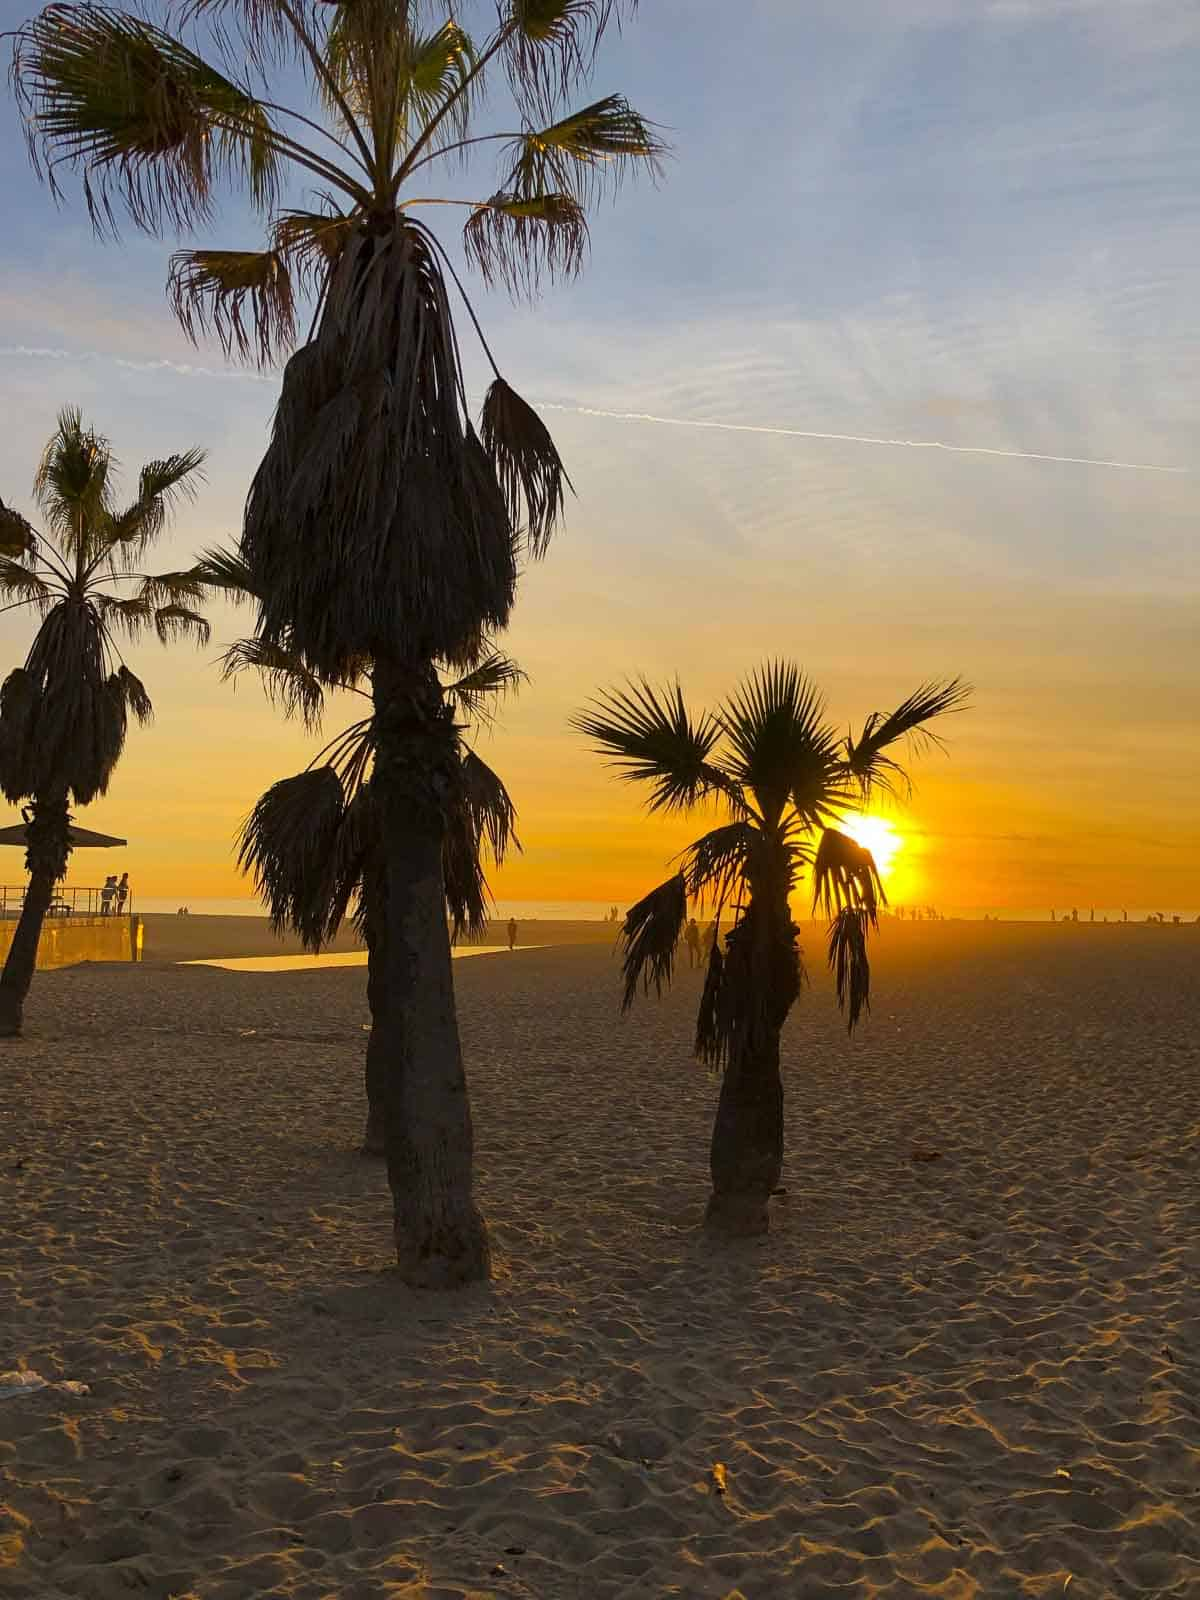 palm trees in front of the sunset on the beach